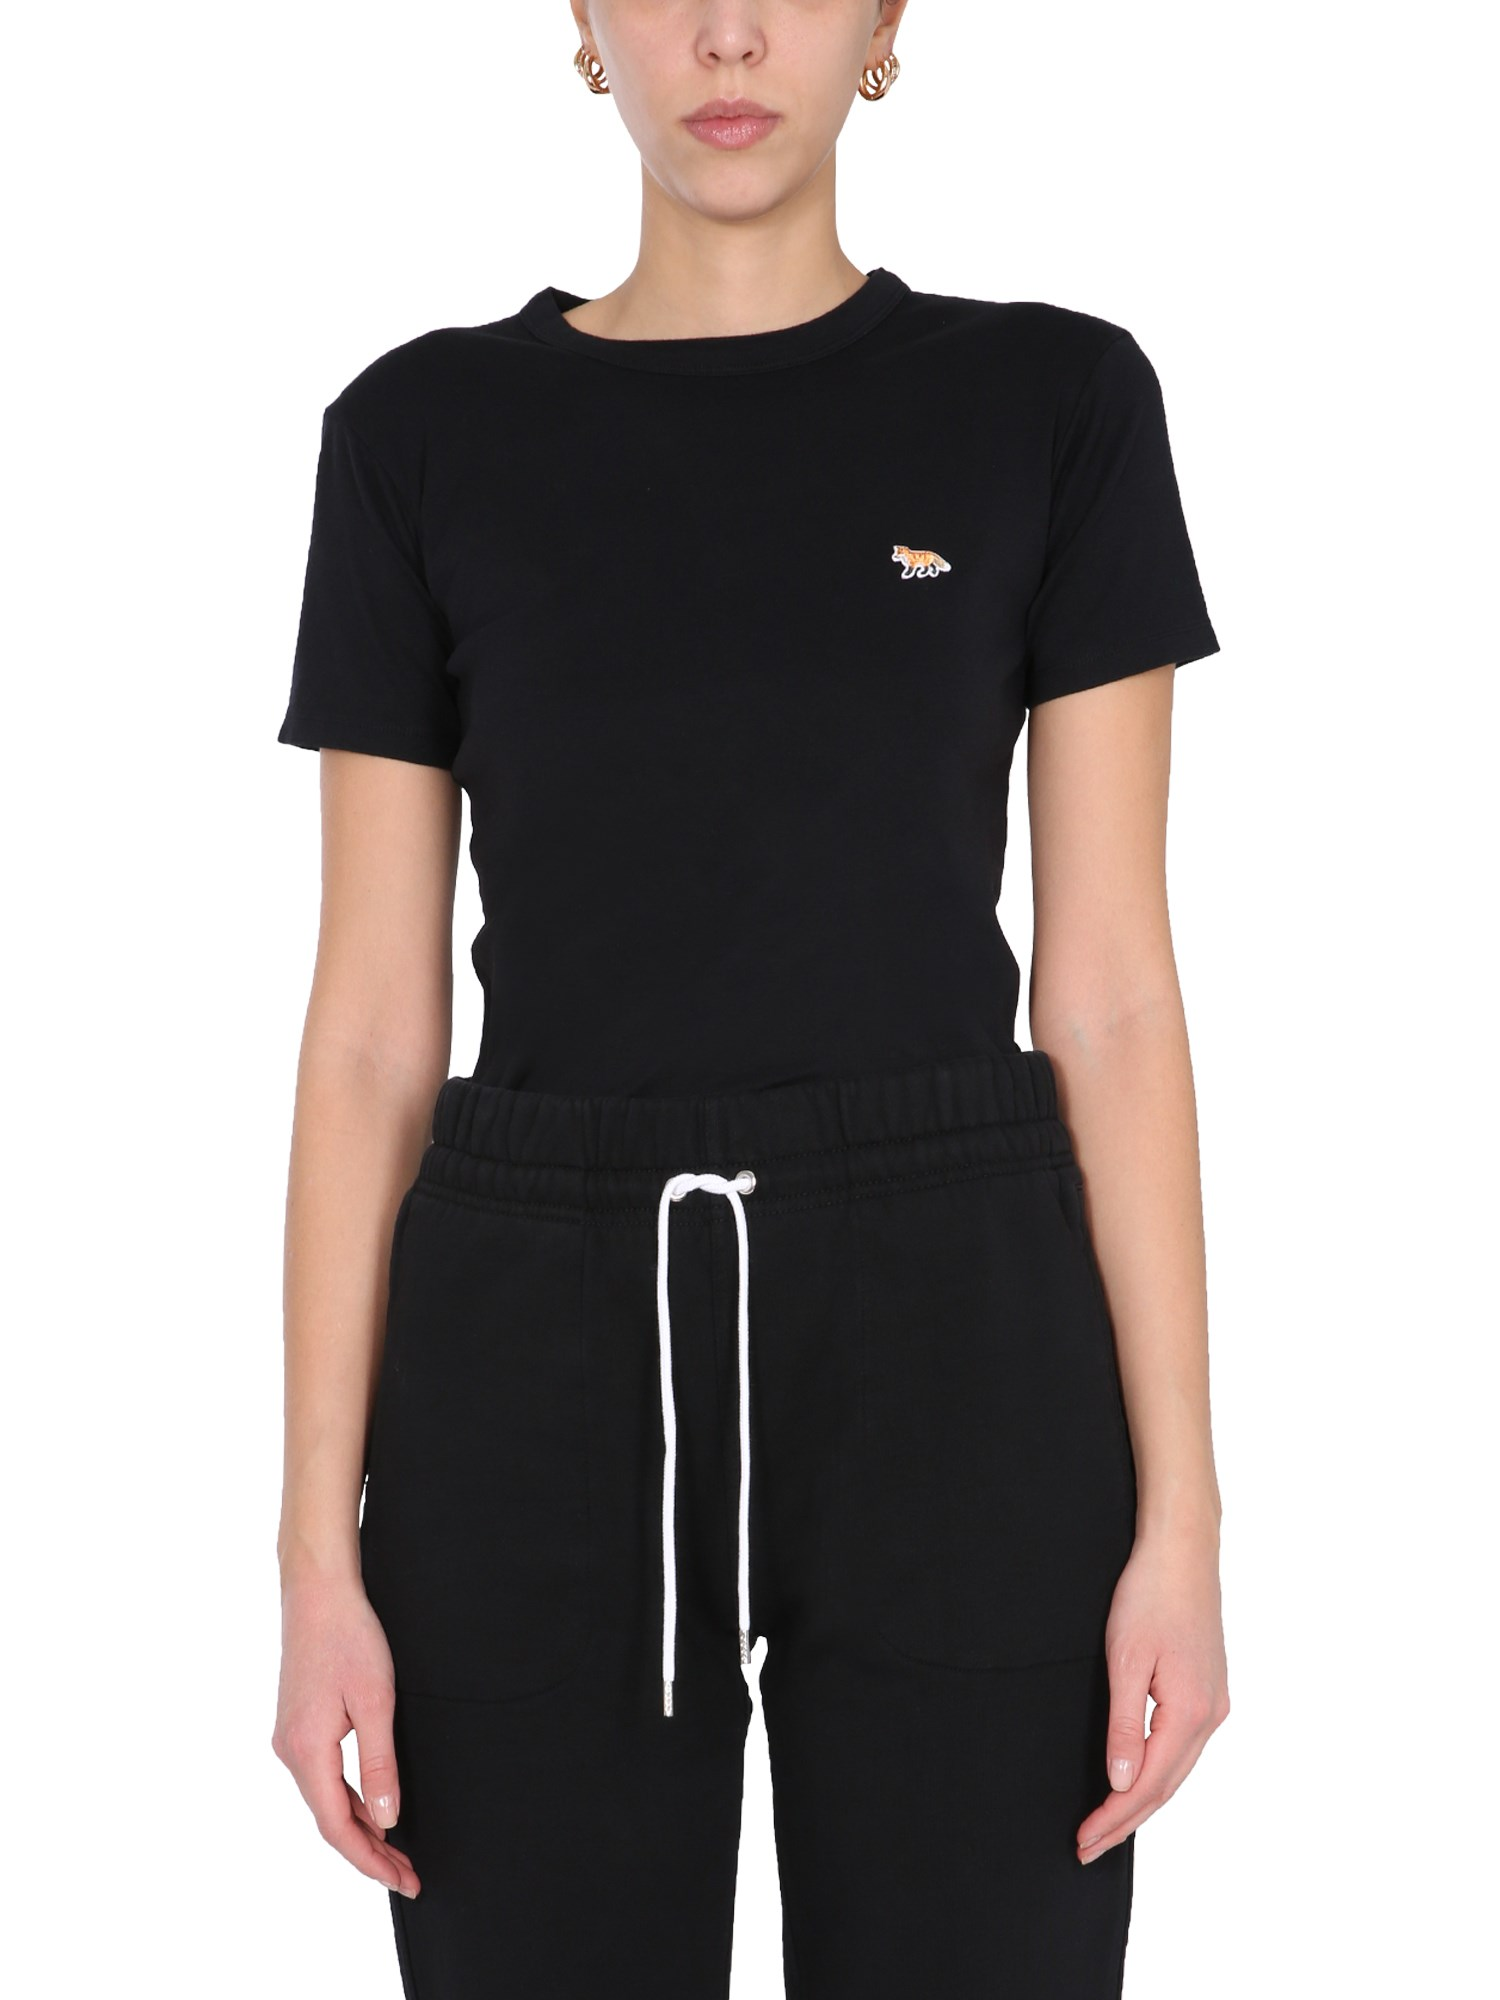 Maison Kitsuné T-SHIRT CON PATCH FOX